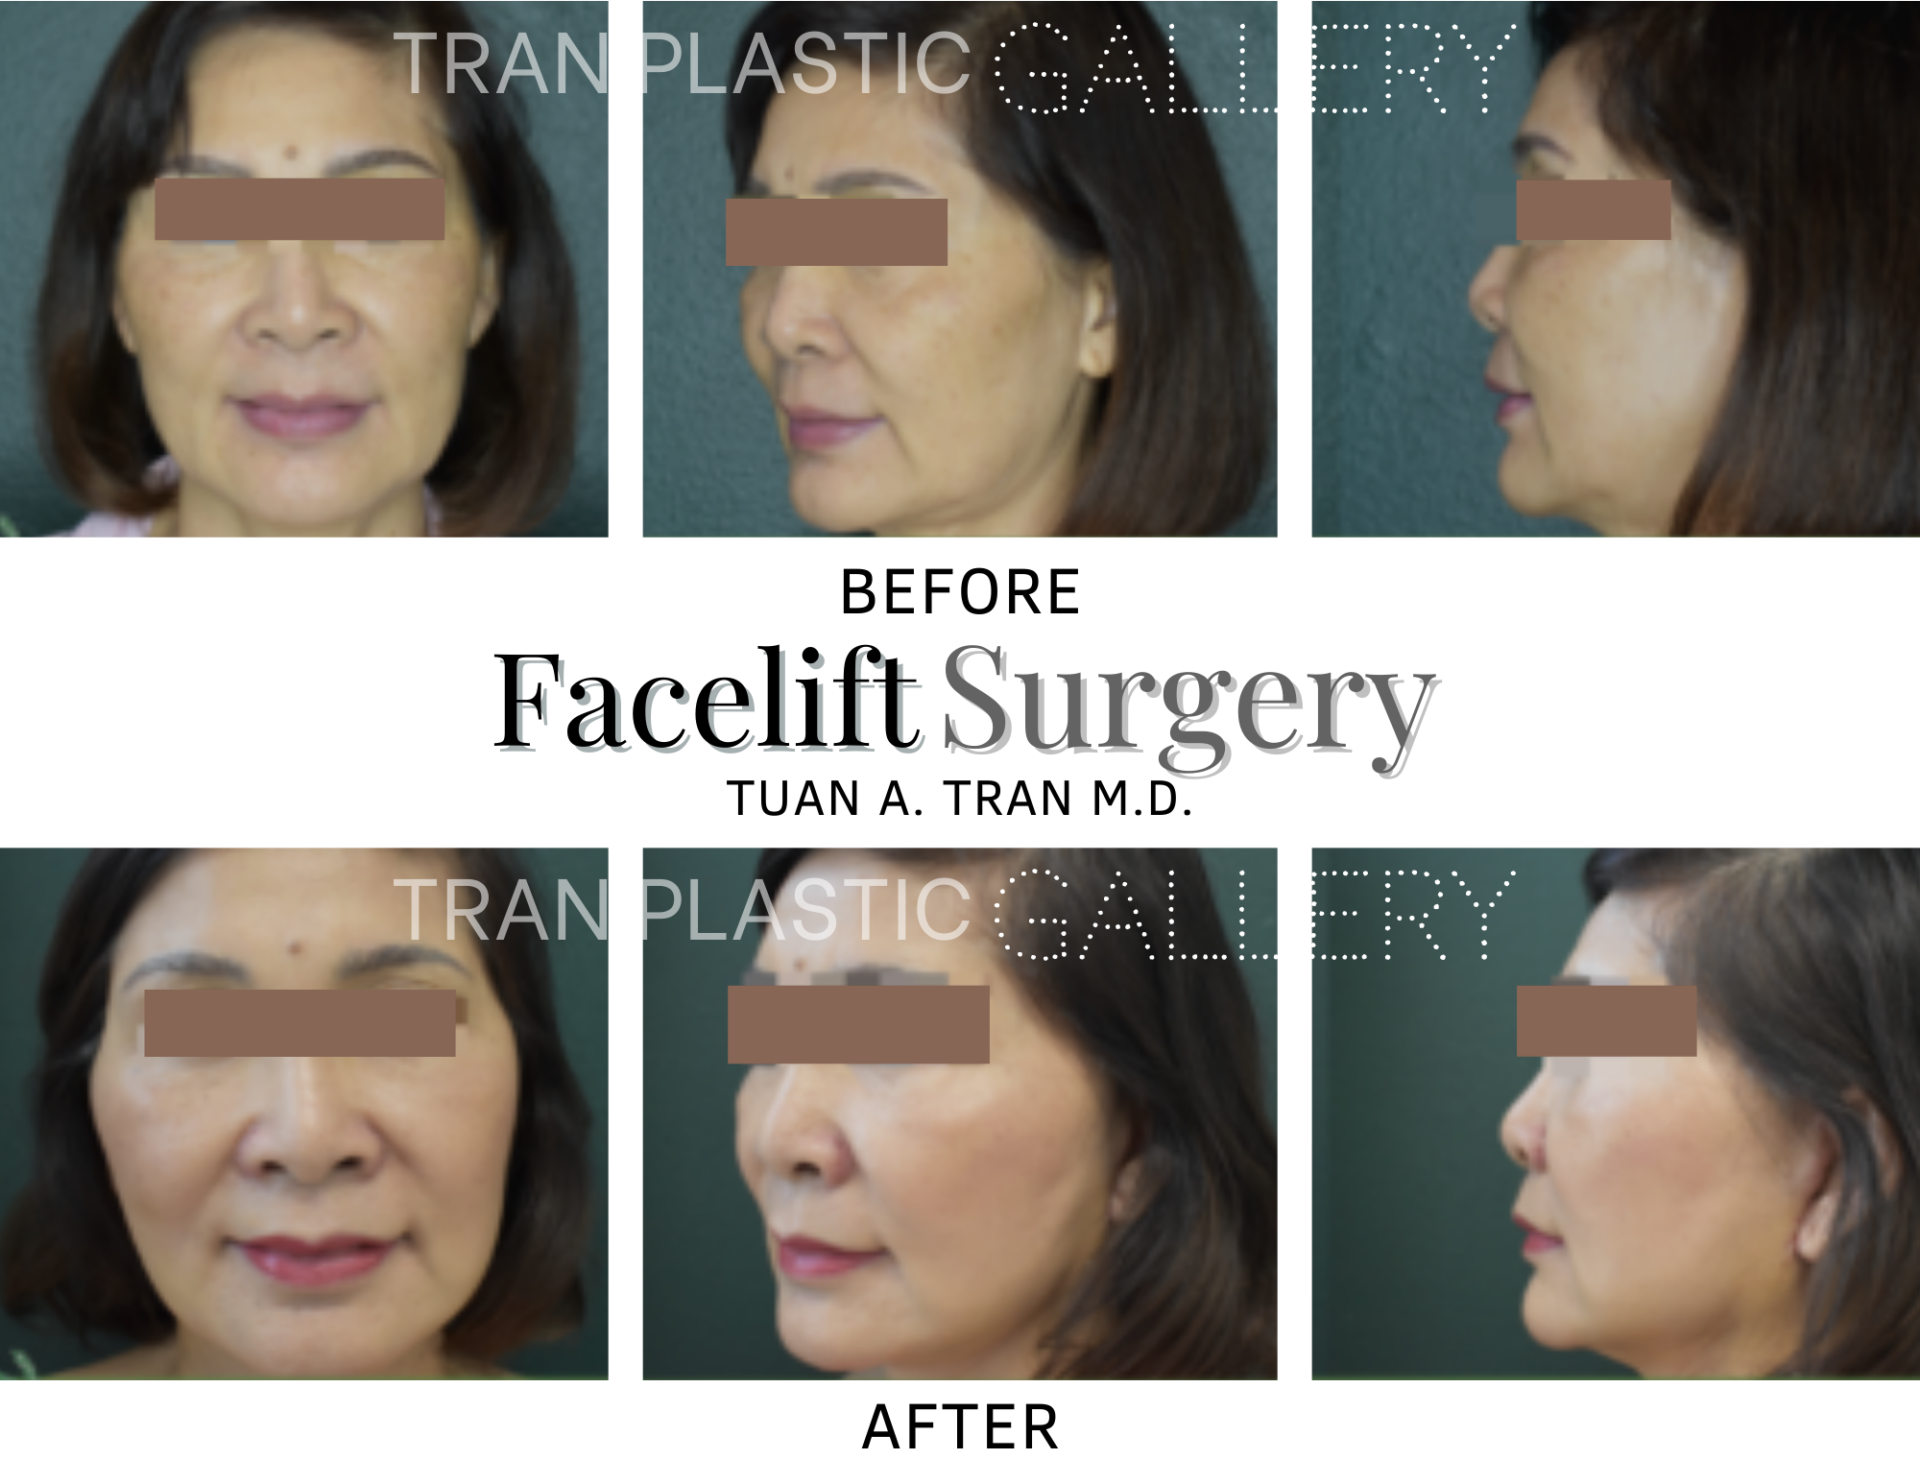 Tran Plastic Surgery - Facelift